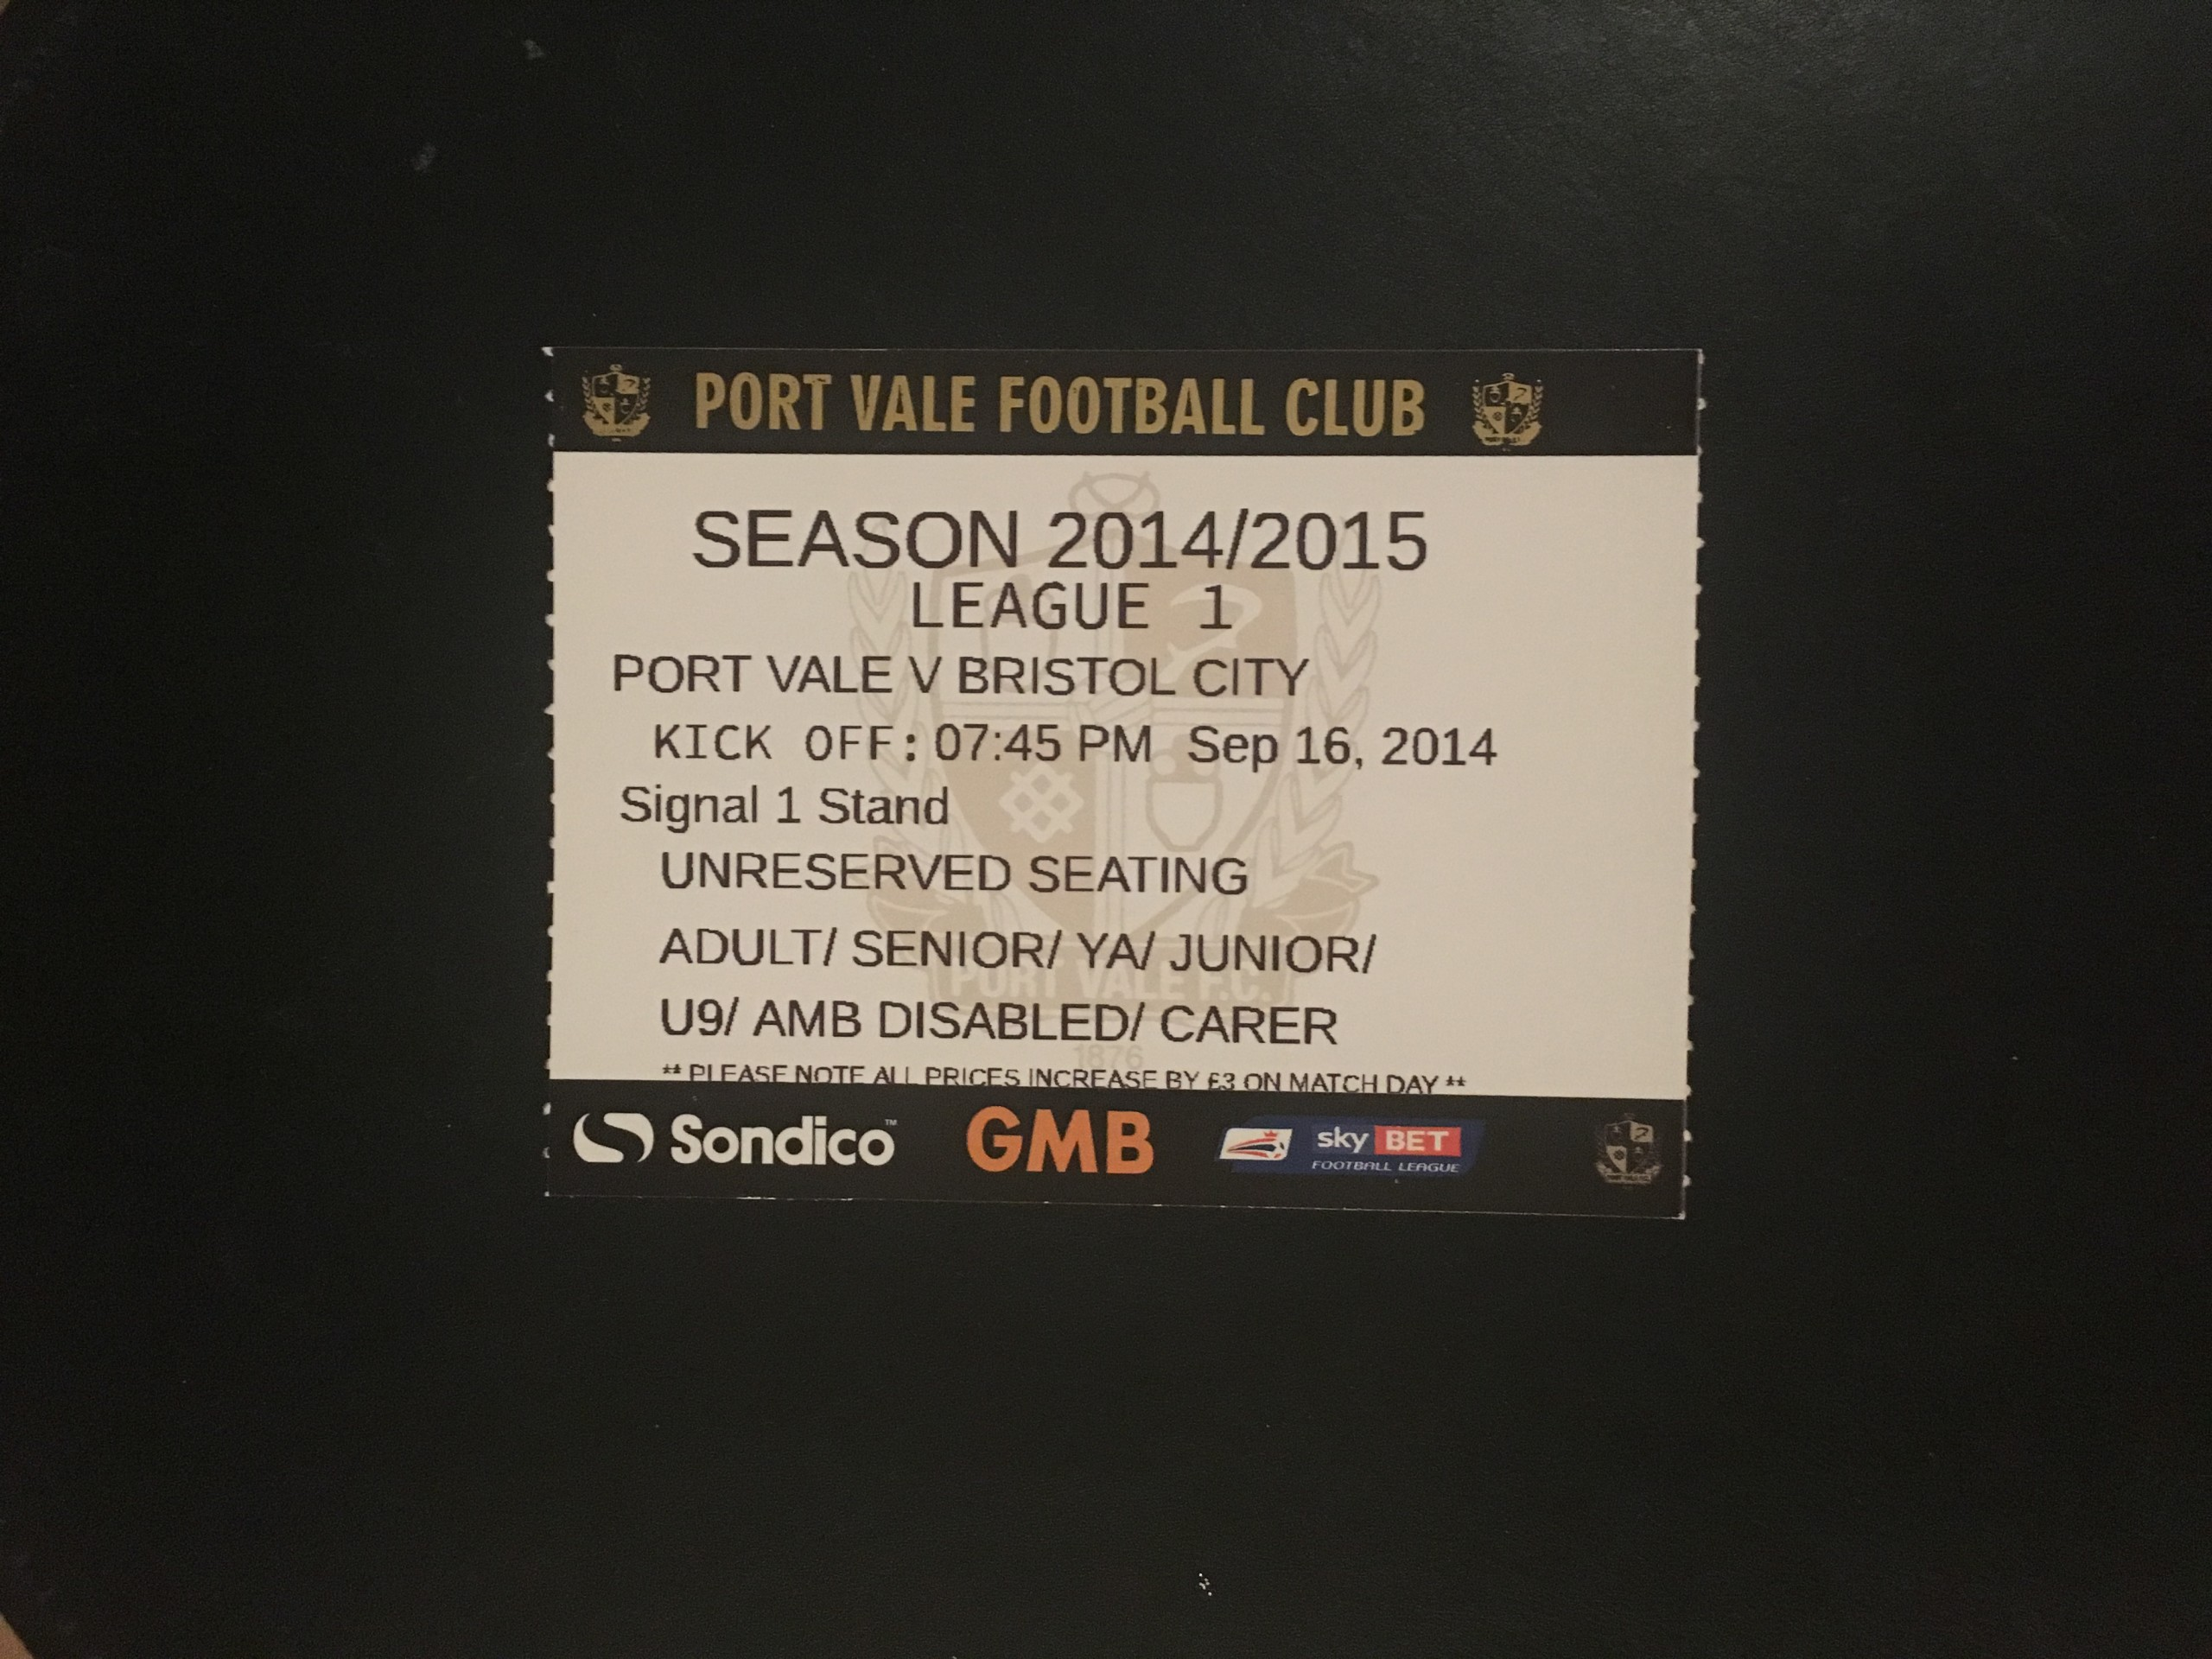 Port Vale v Bristol City 16-09-2014 Ticket